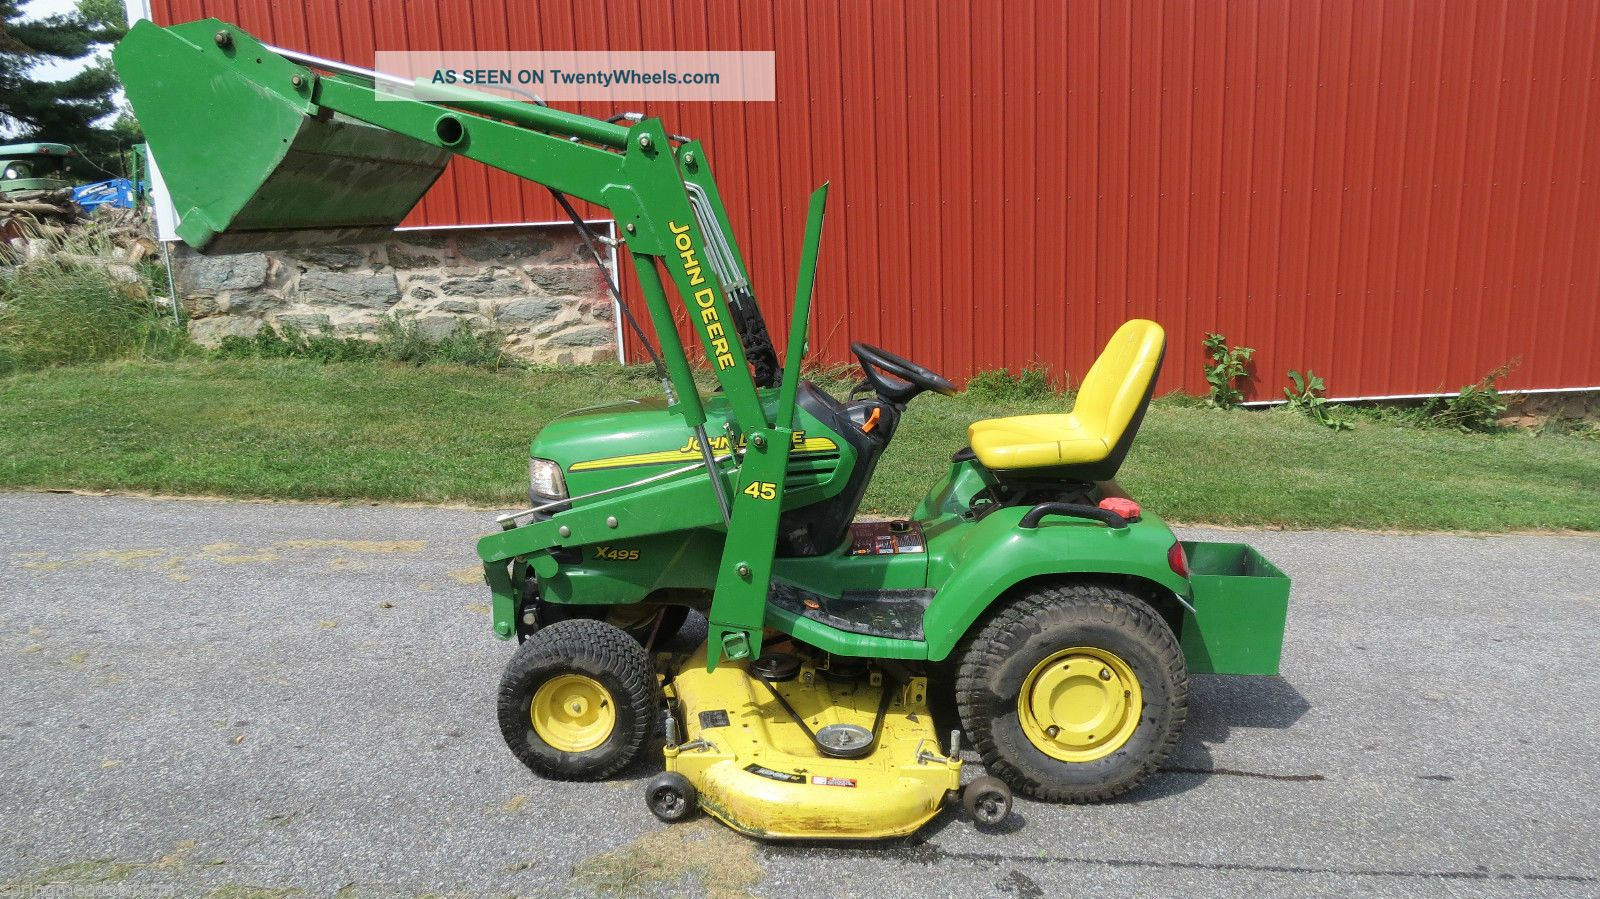 2004 John Deere X495 Garden Tractor W/ Loader Belly Mower ...